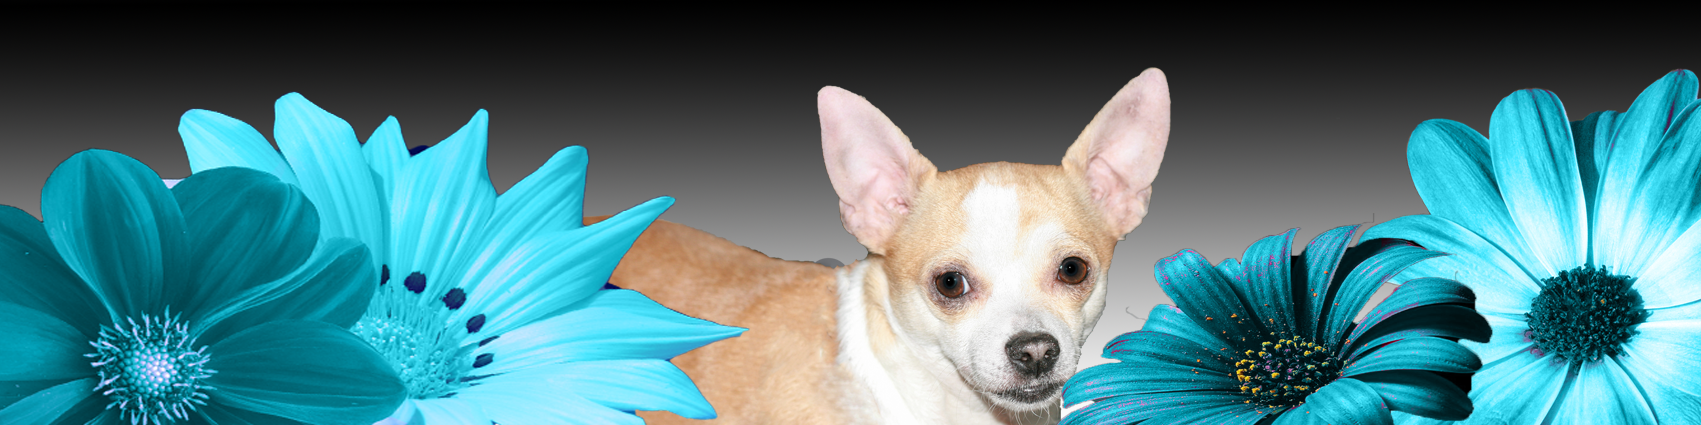 ollie-banner2.png